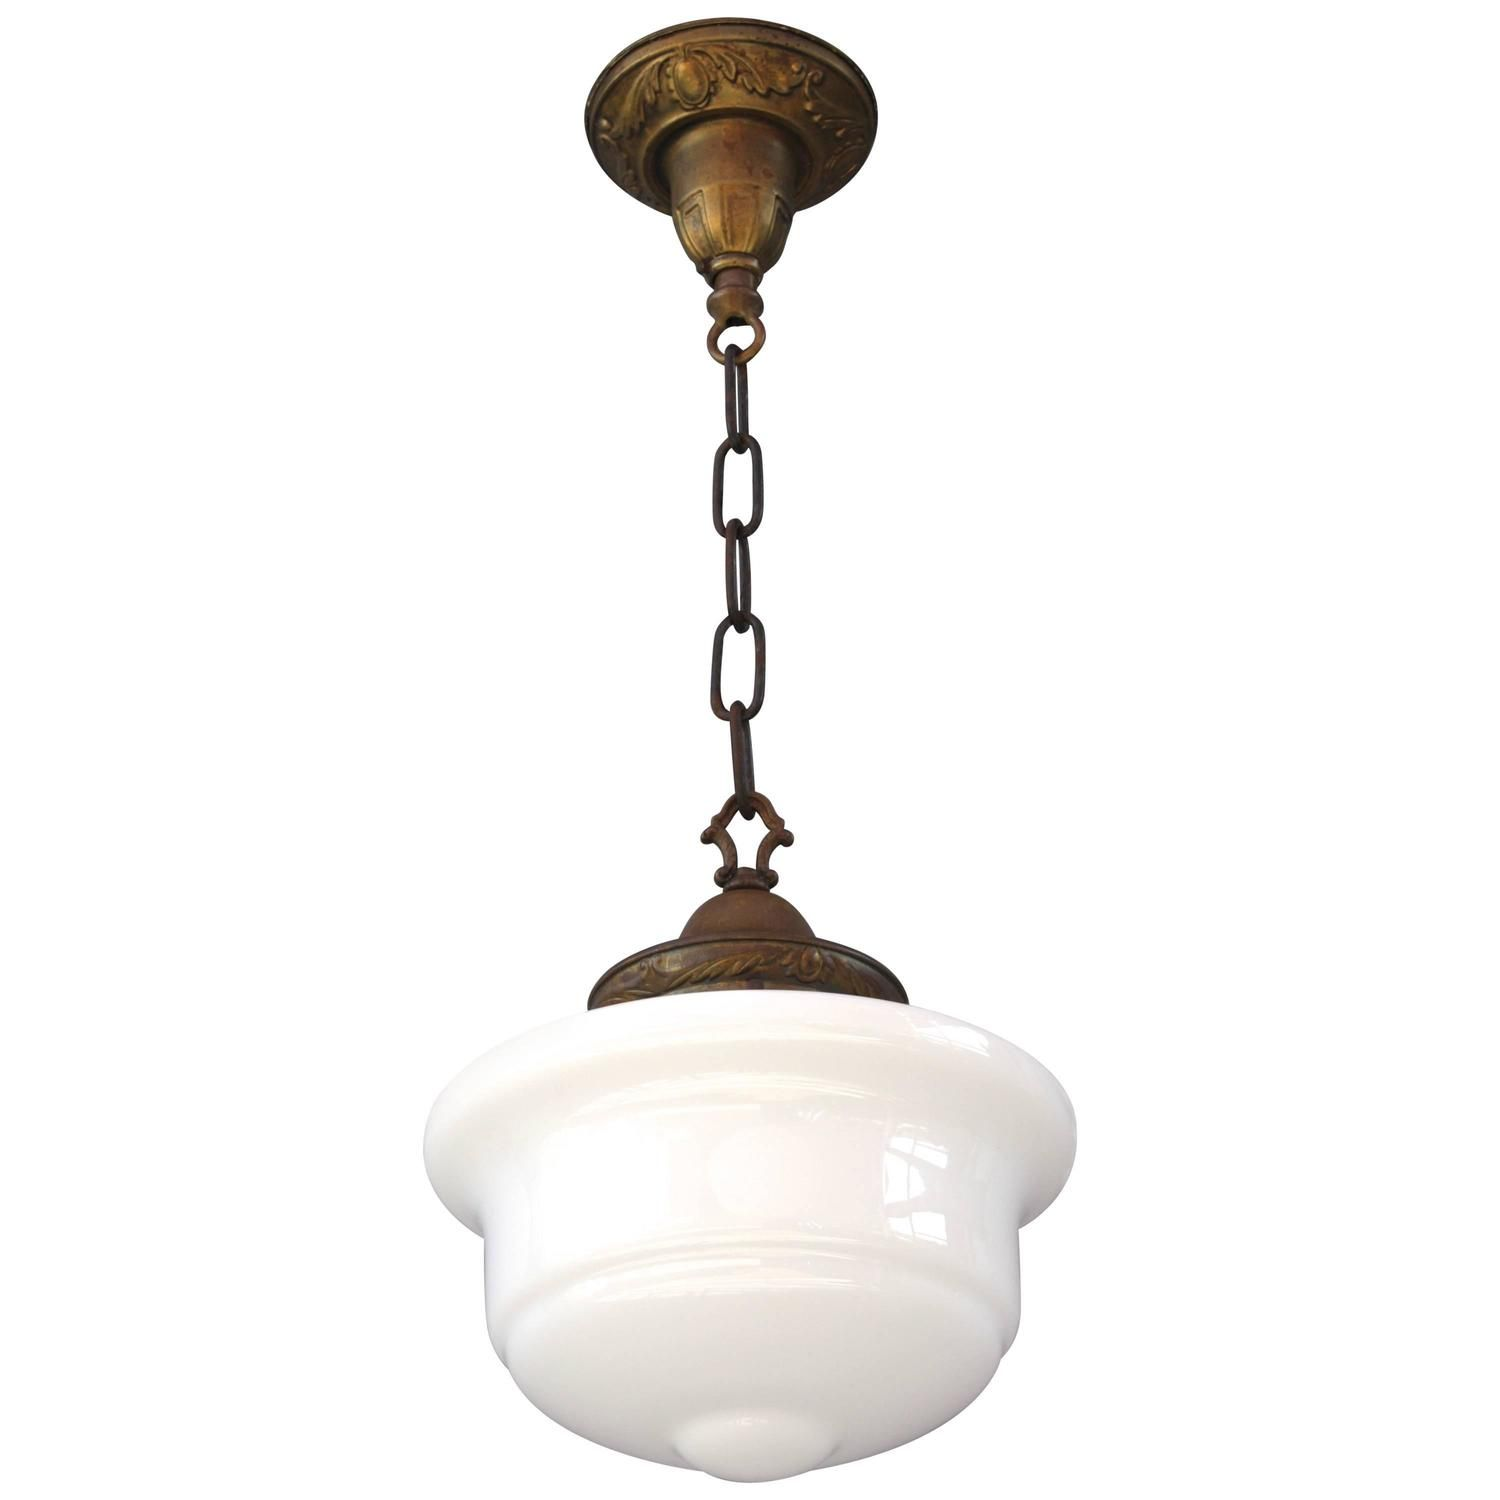 Unique Pendant Lighting Fixtures. 1920s Milk Glass Pendant Light Fixture  glass